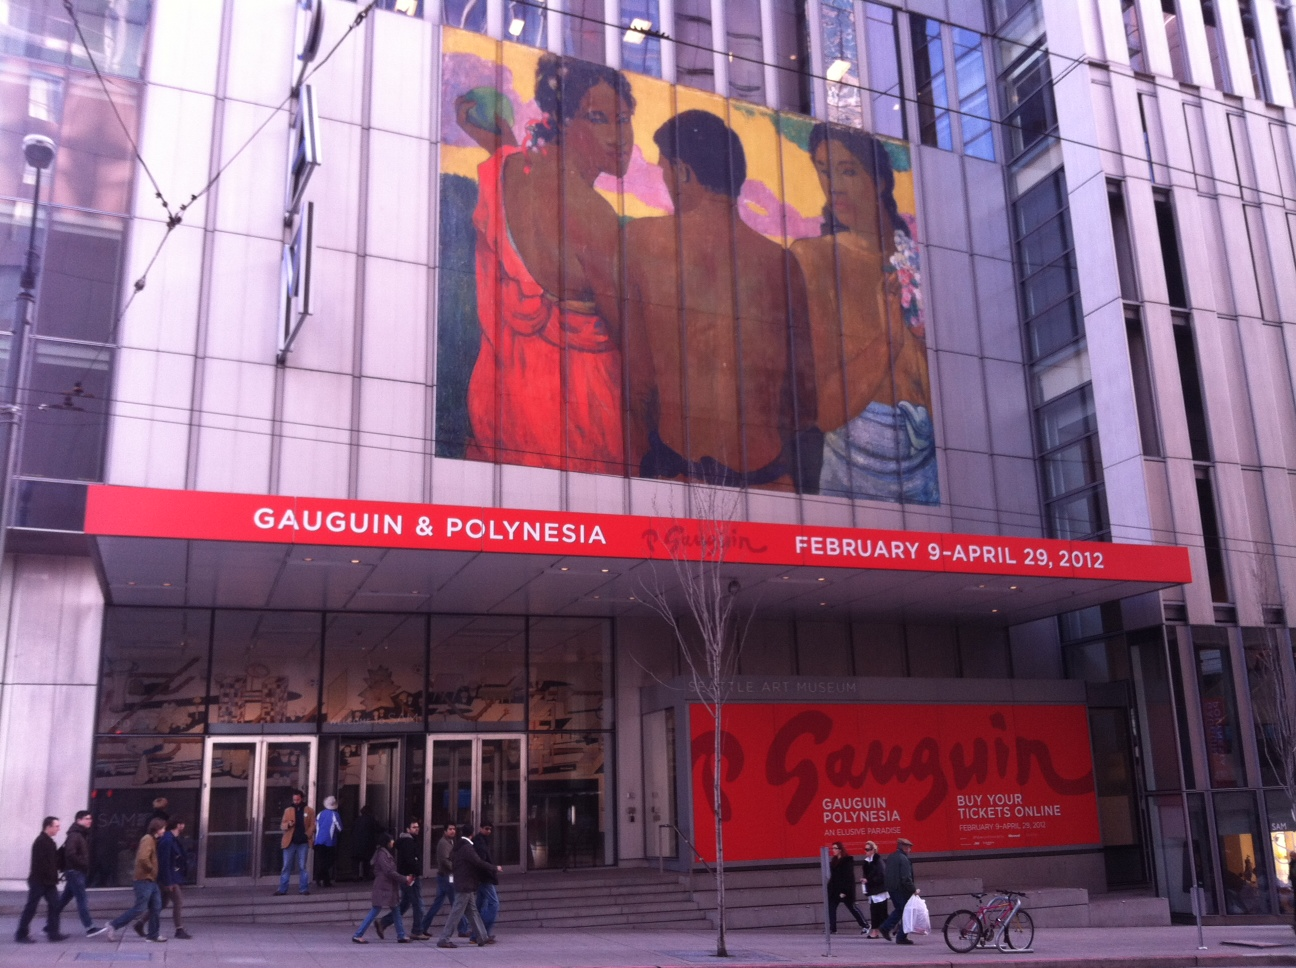 """Gauguin & Polynesia: An Elusive Paradise"" will be on view at the Seattle Art Museum from February 9-April 29, 2012"